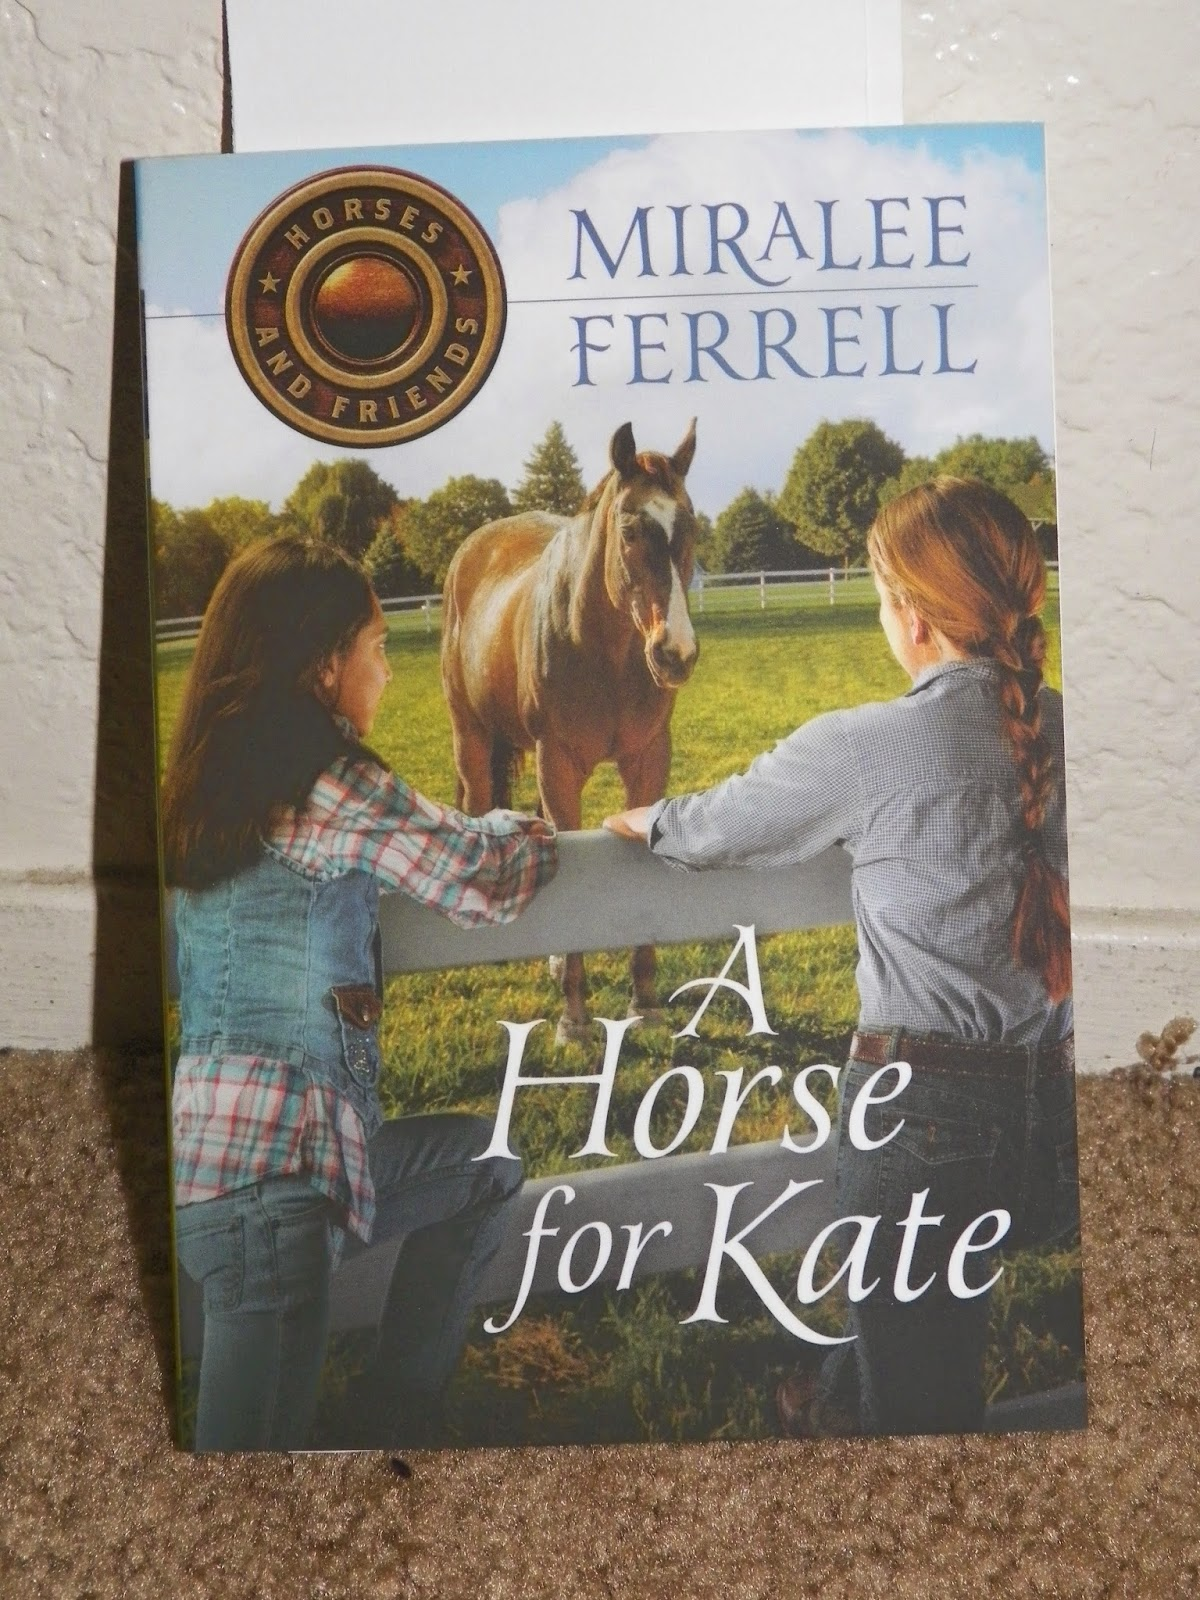 A_Horse_For_Kate.jpg